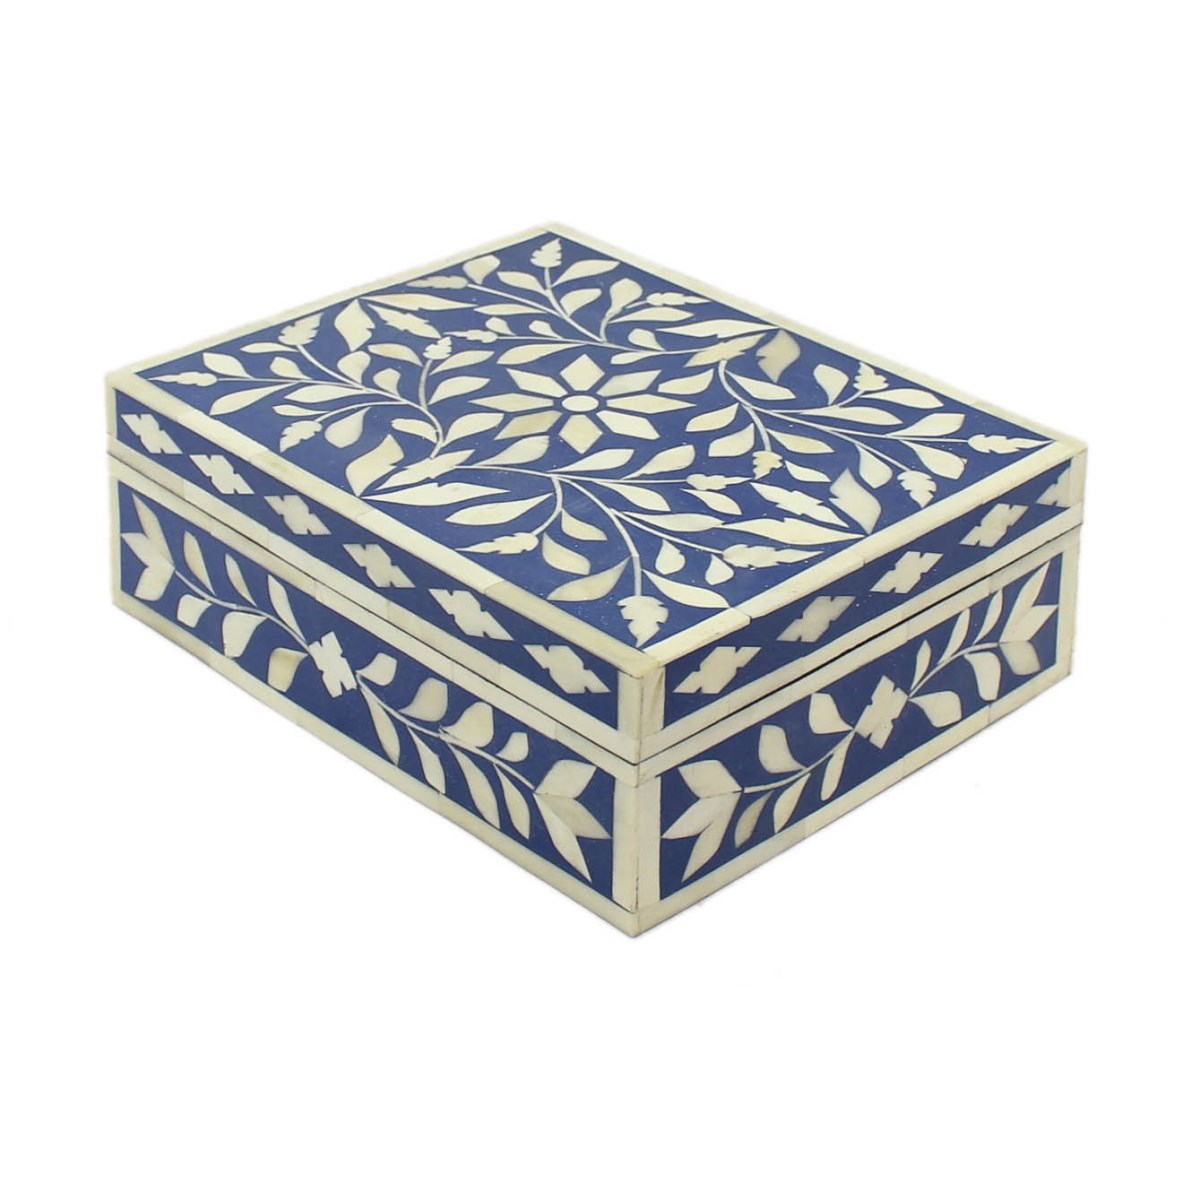 Floral Bone Inlay Decorative Box Roomattic